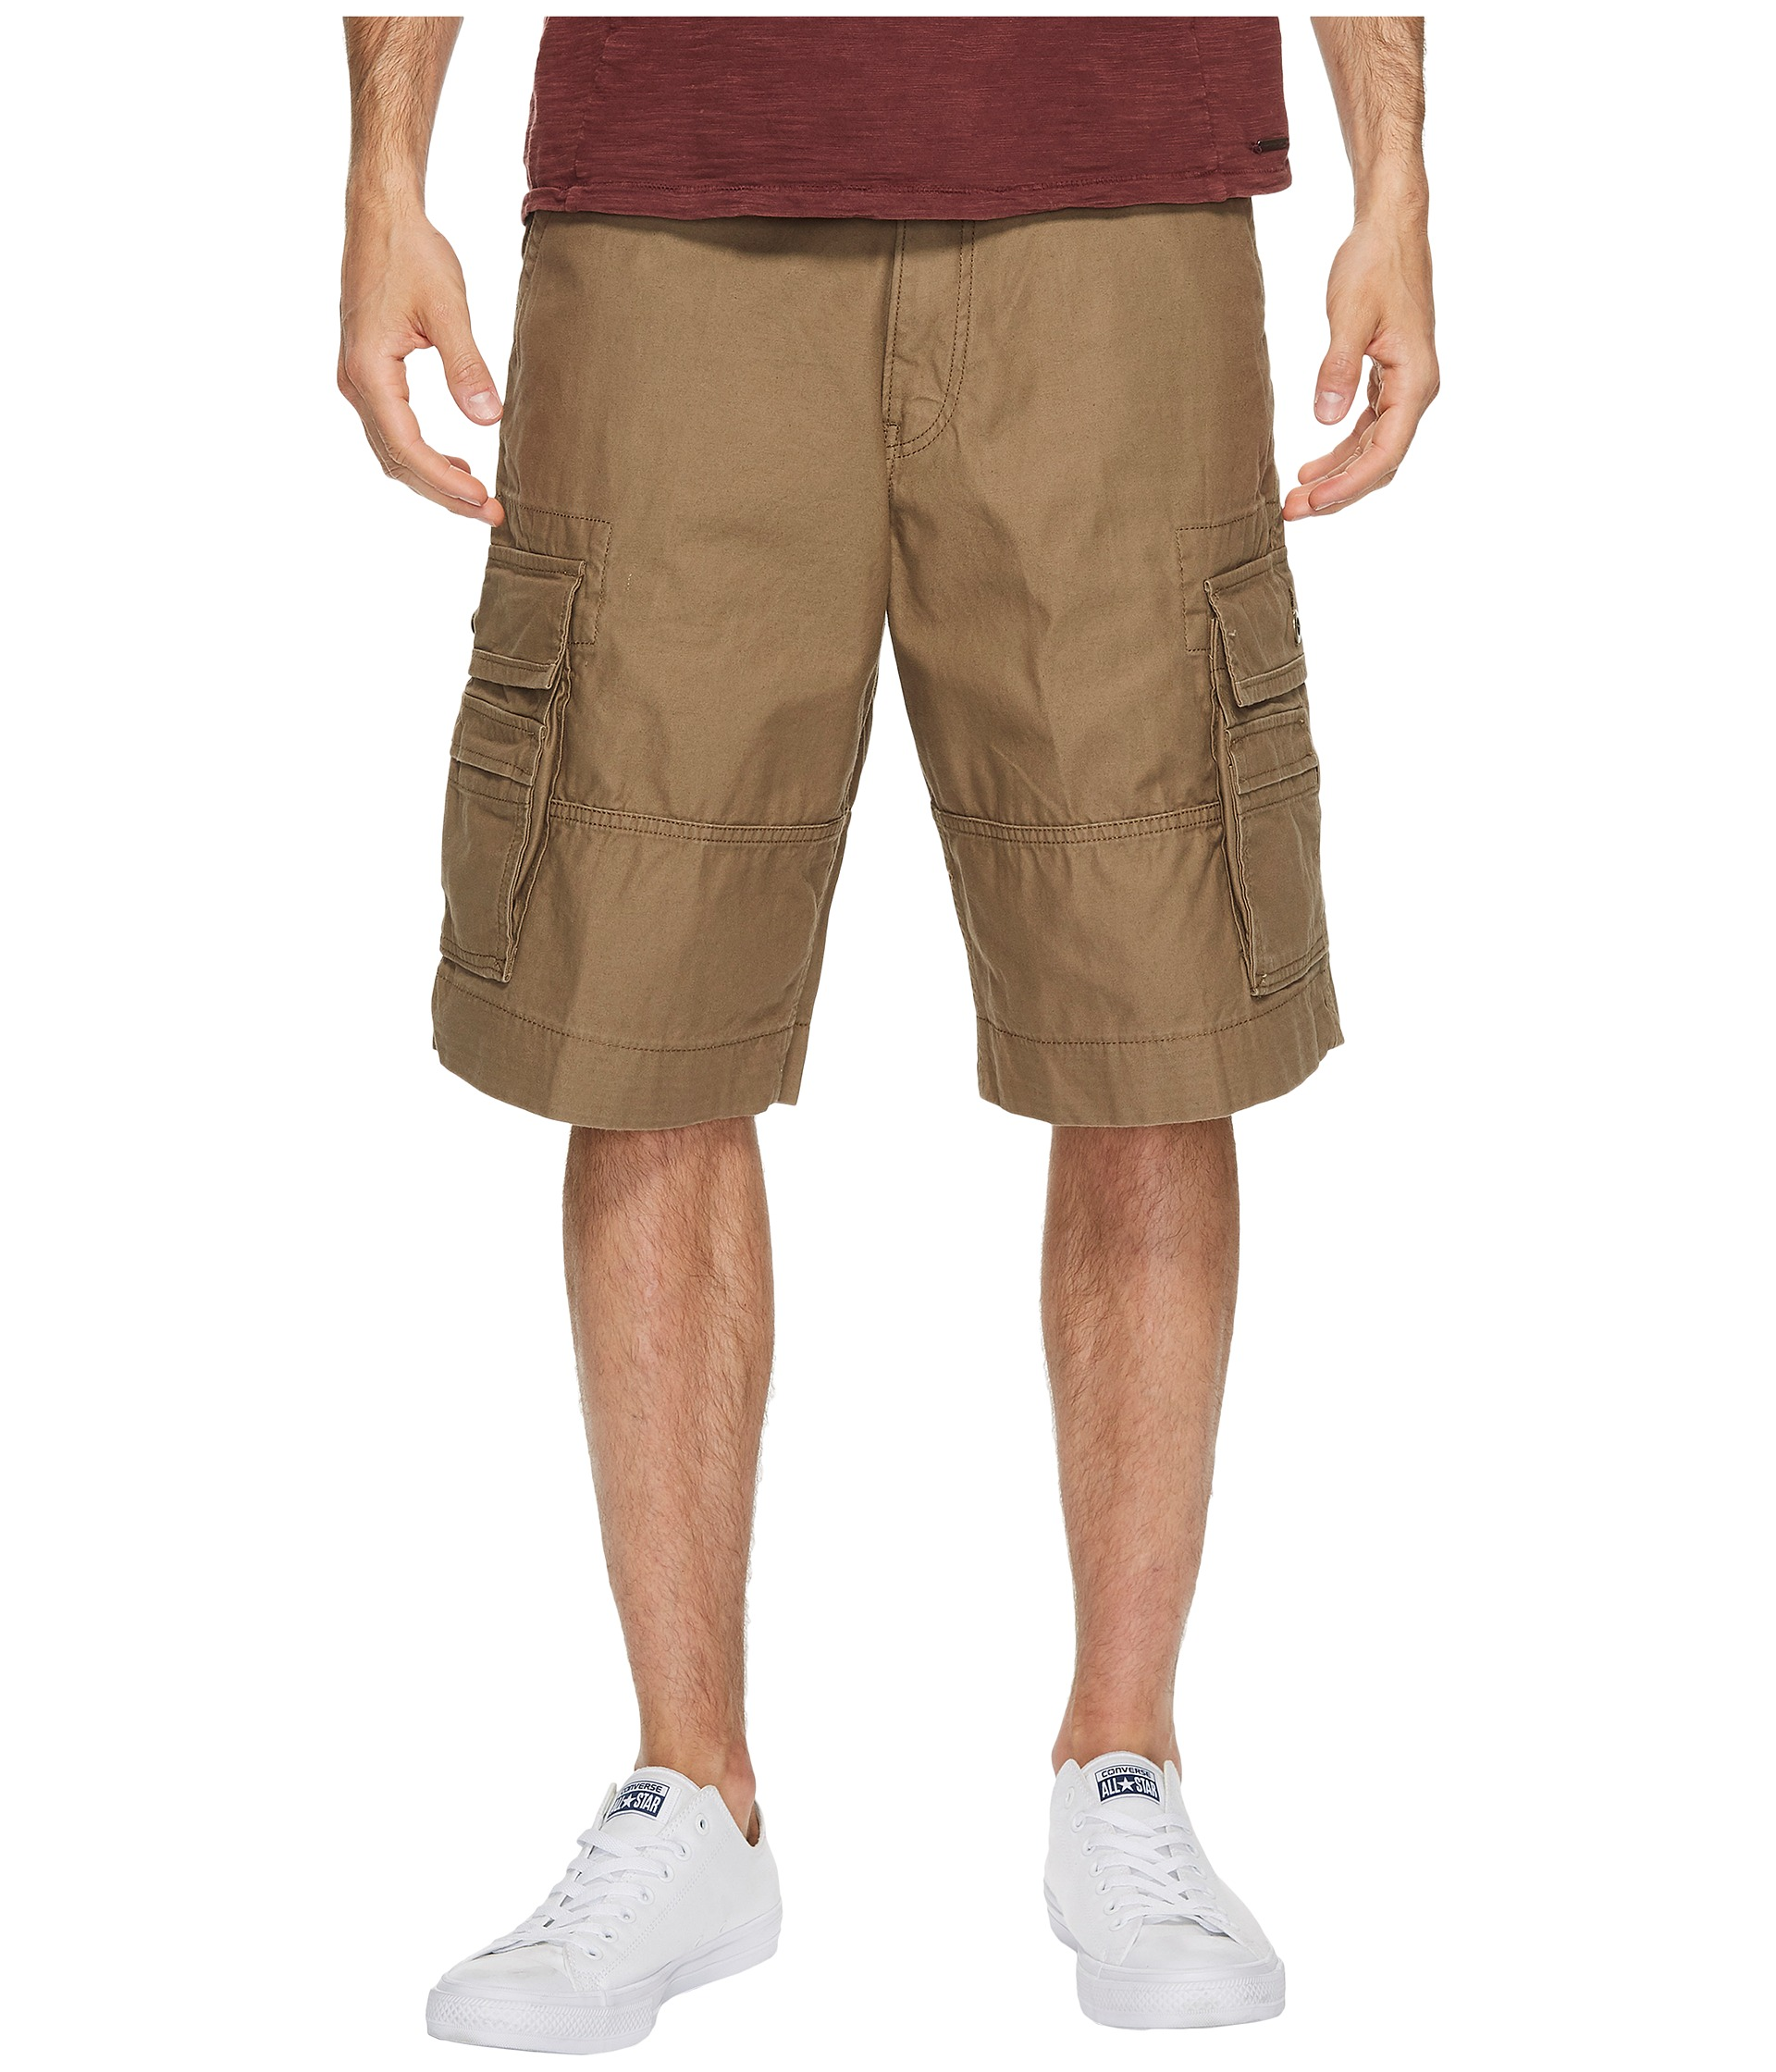 Gallery For gt Mens Cargo Shorts